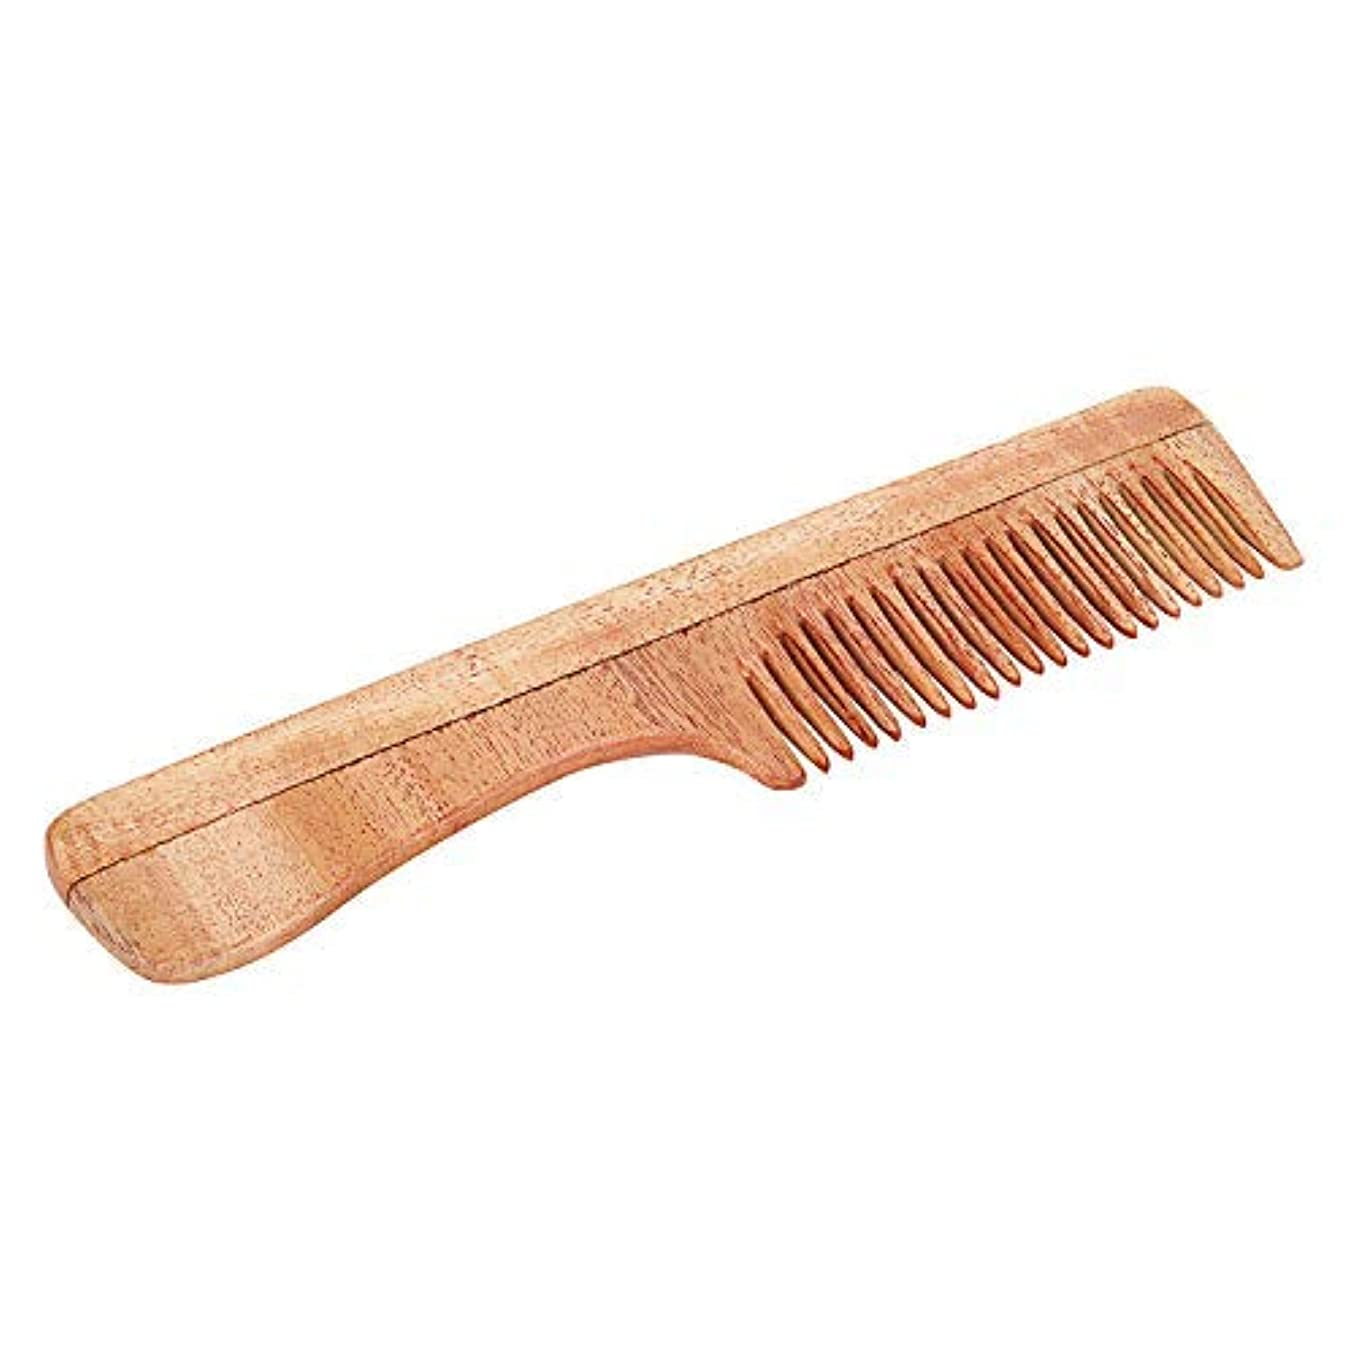 甘い命題宇宙SVATV Handcrafted Neem Wood Comb with Handle N-73 (7